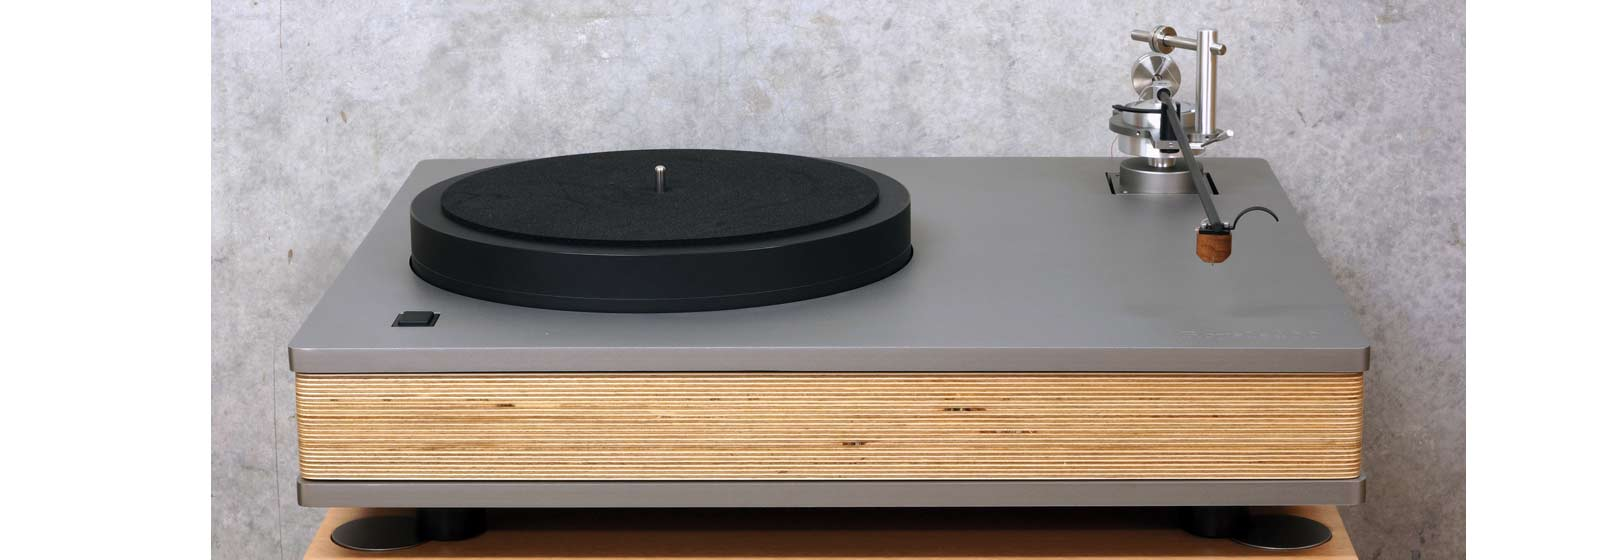 Well-Tempered-Lab-Royale-400-turntable